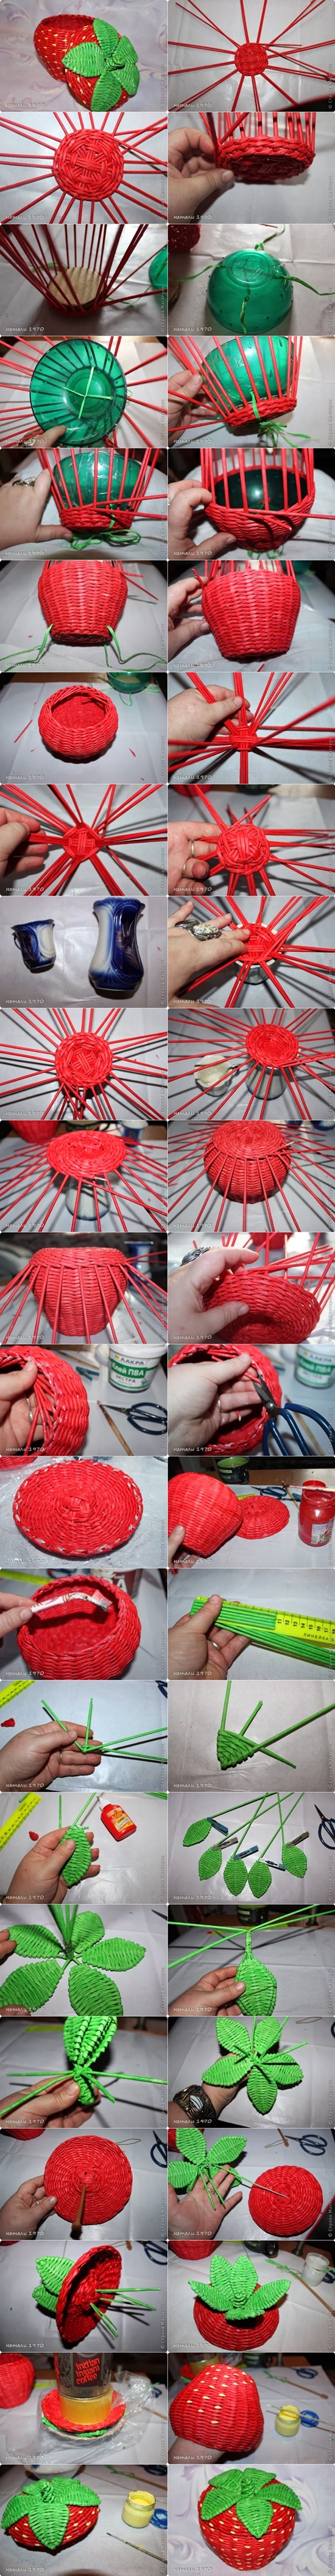 strawberry basket M Wonderful DIY Strawberry  Basket from Recycled Paper